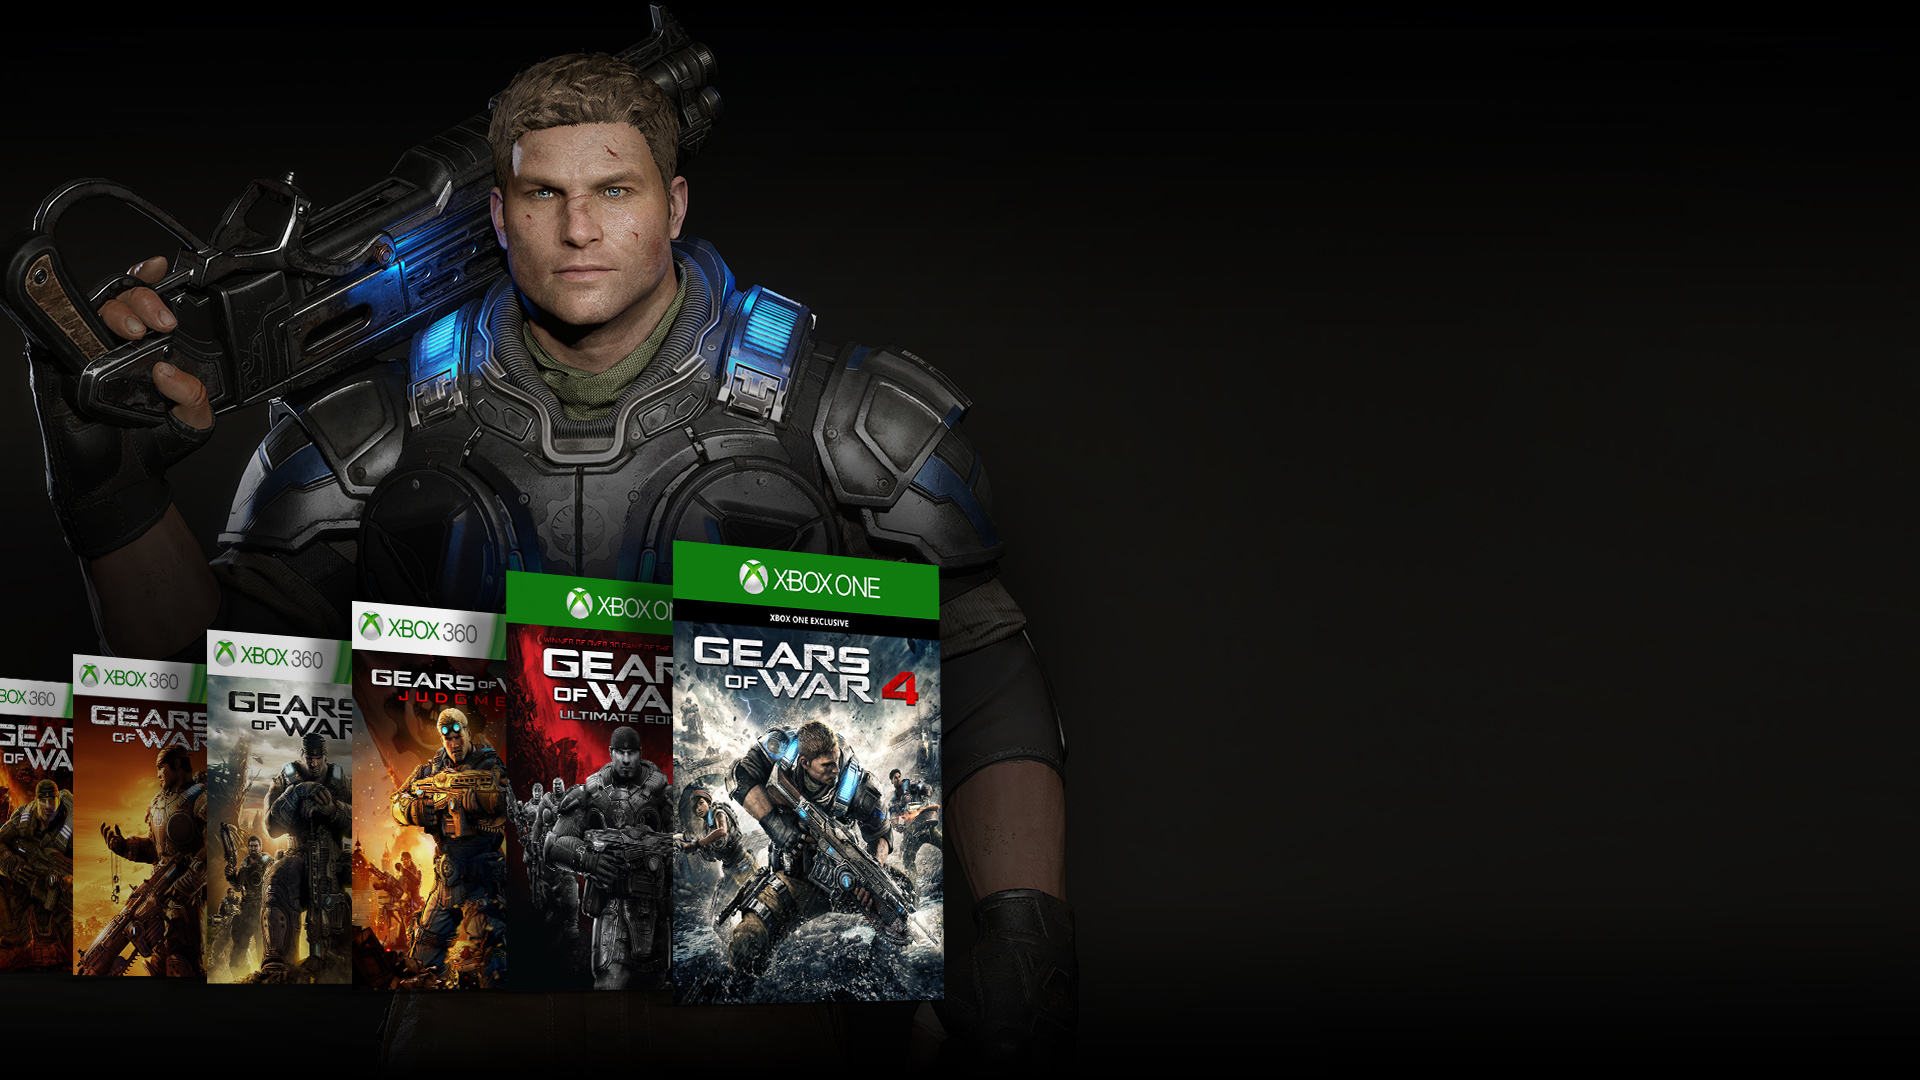 Row of Gears of war box shots in front of jd fenix